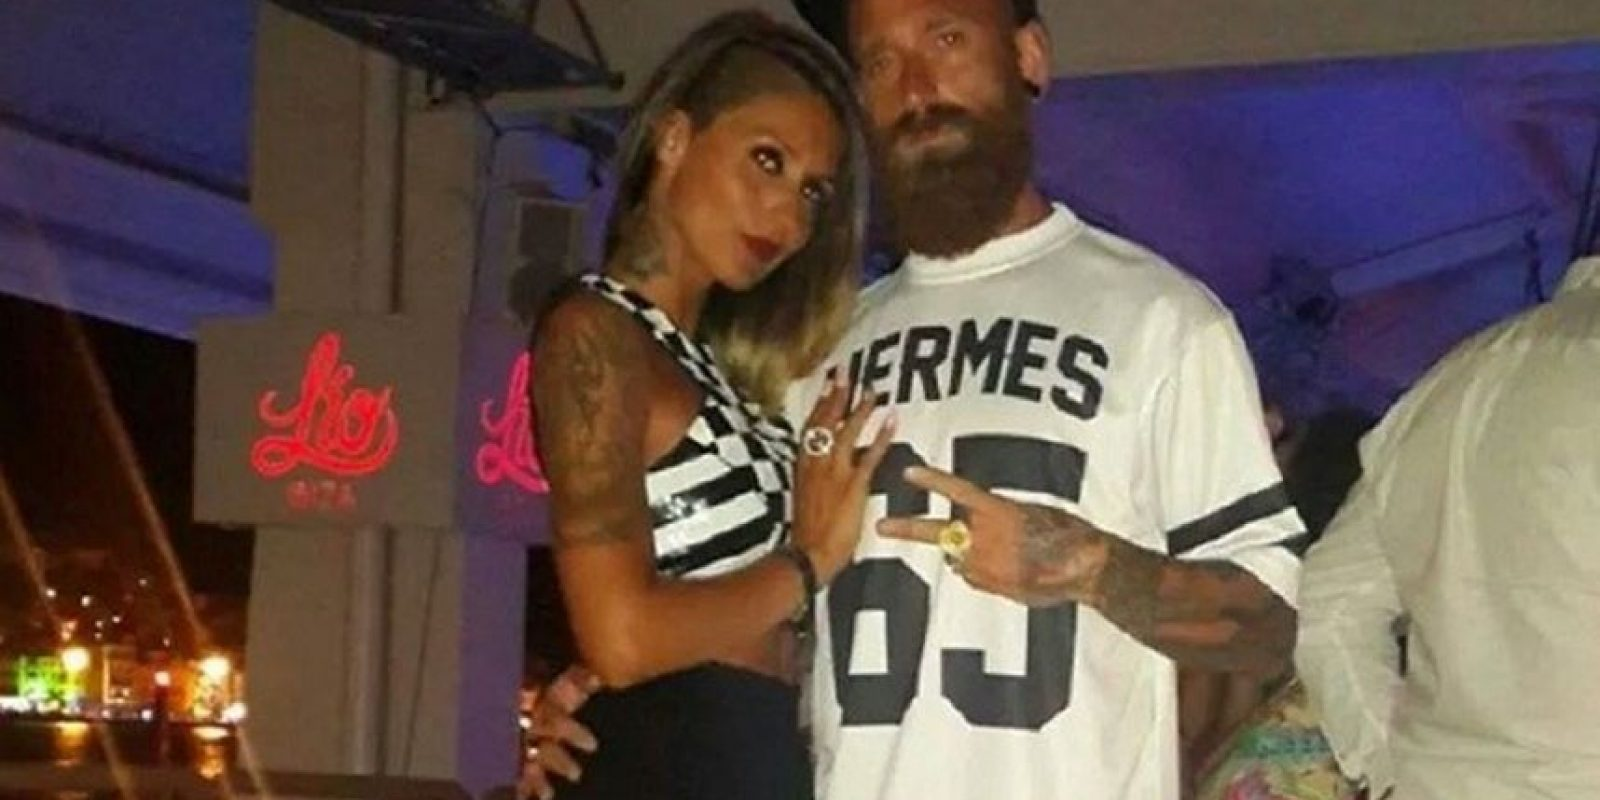 Raúl Meireles Foto: Instagram: @official_raul_meireles